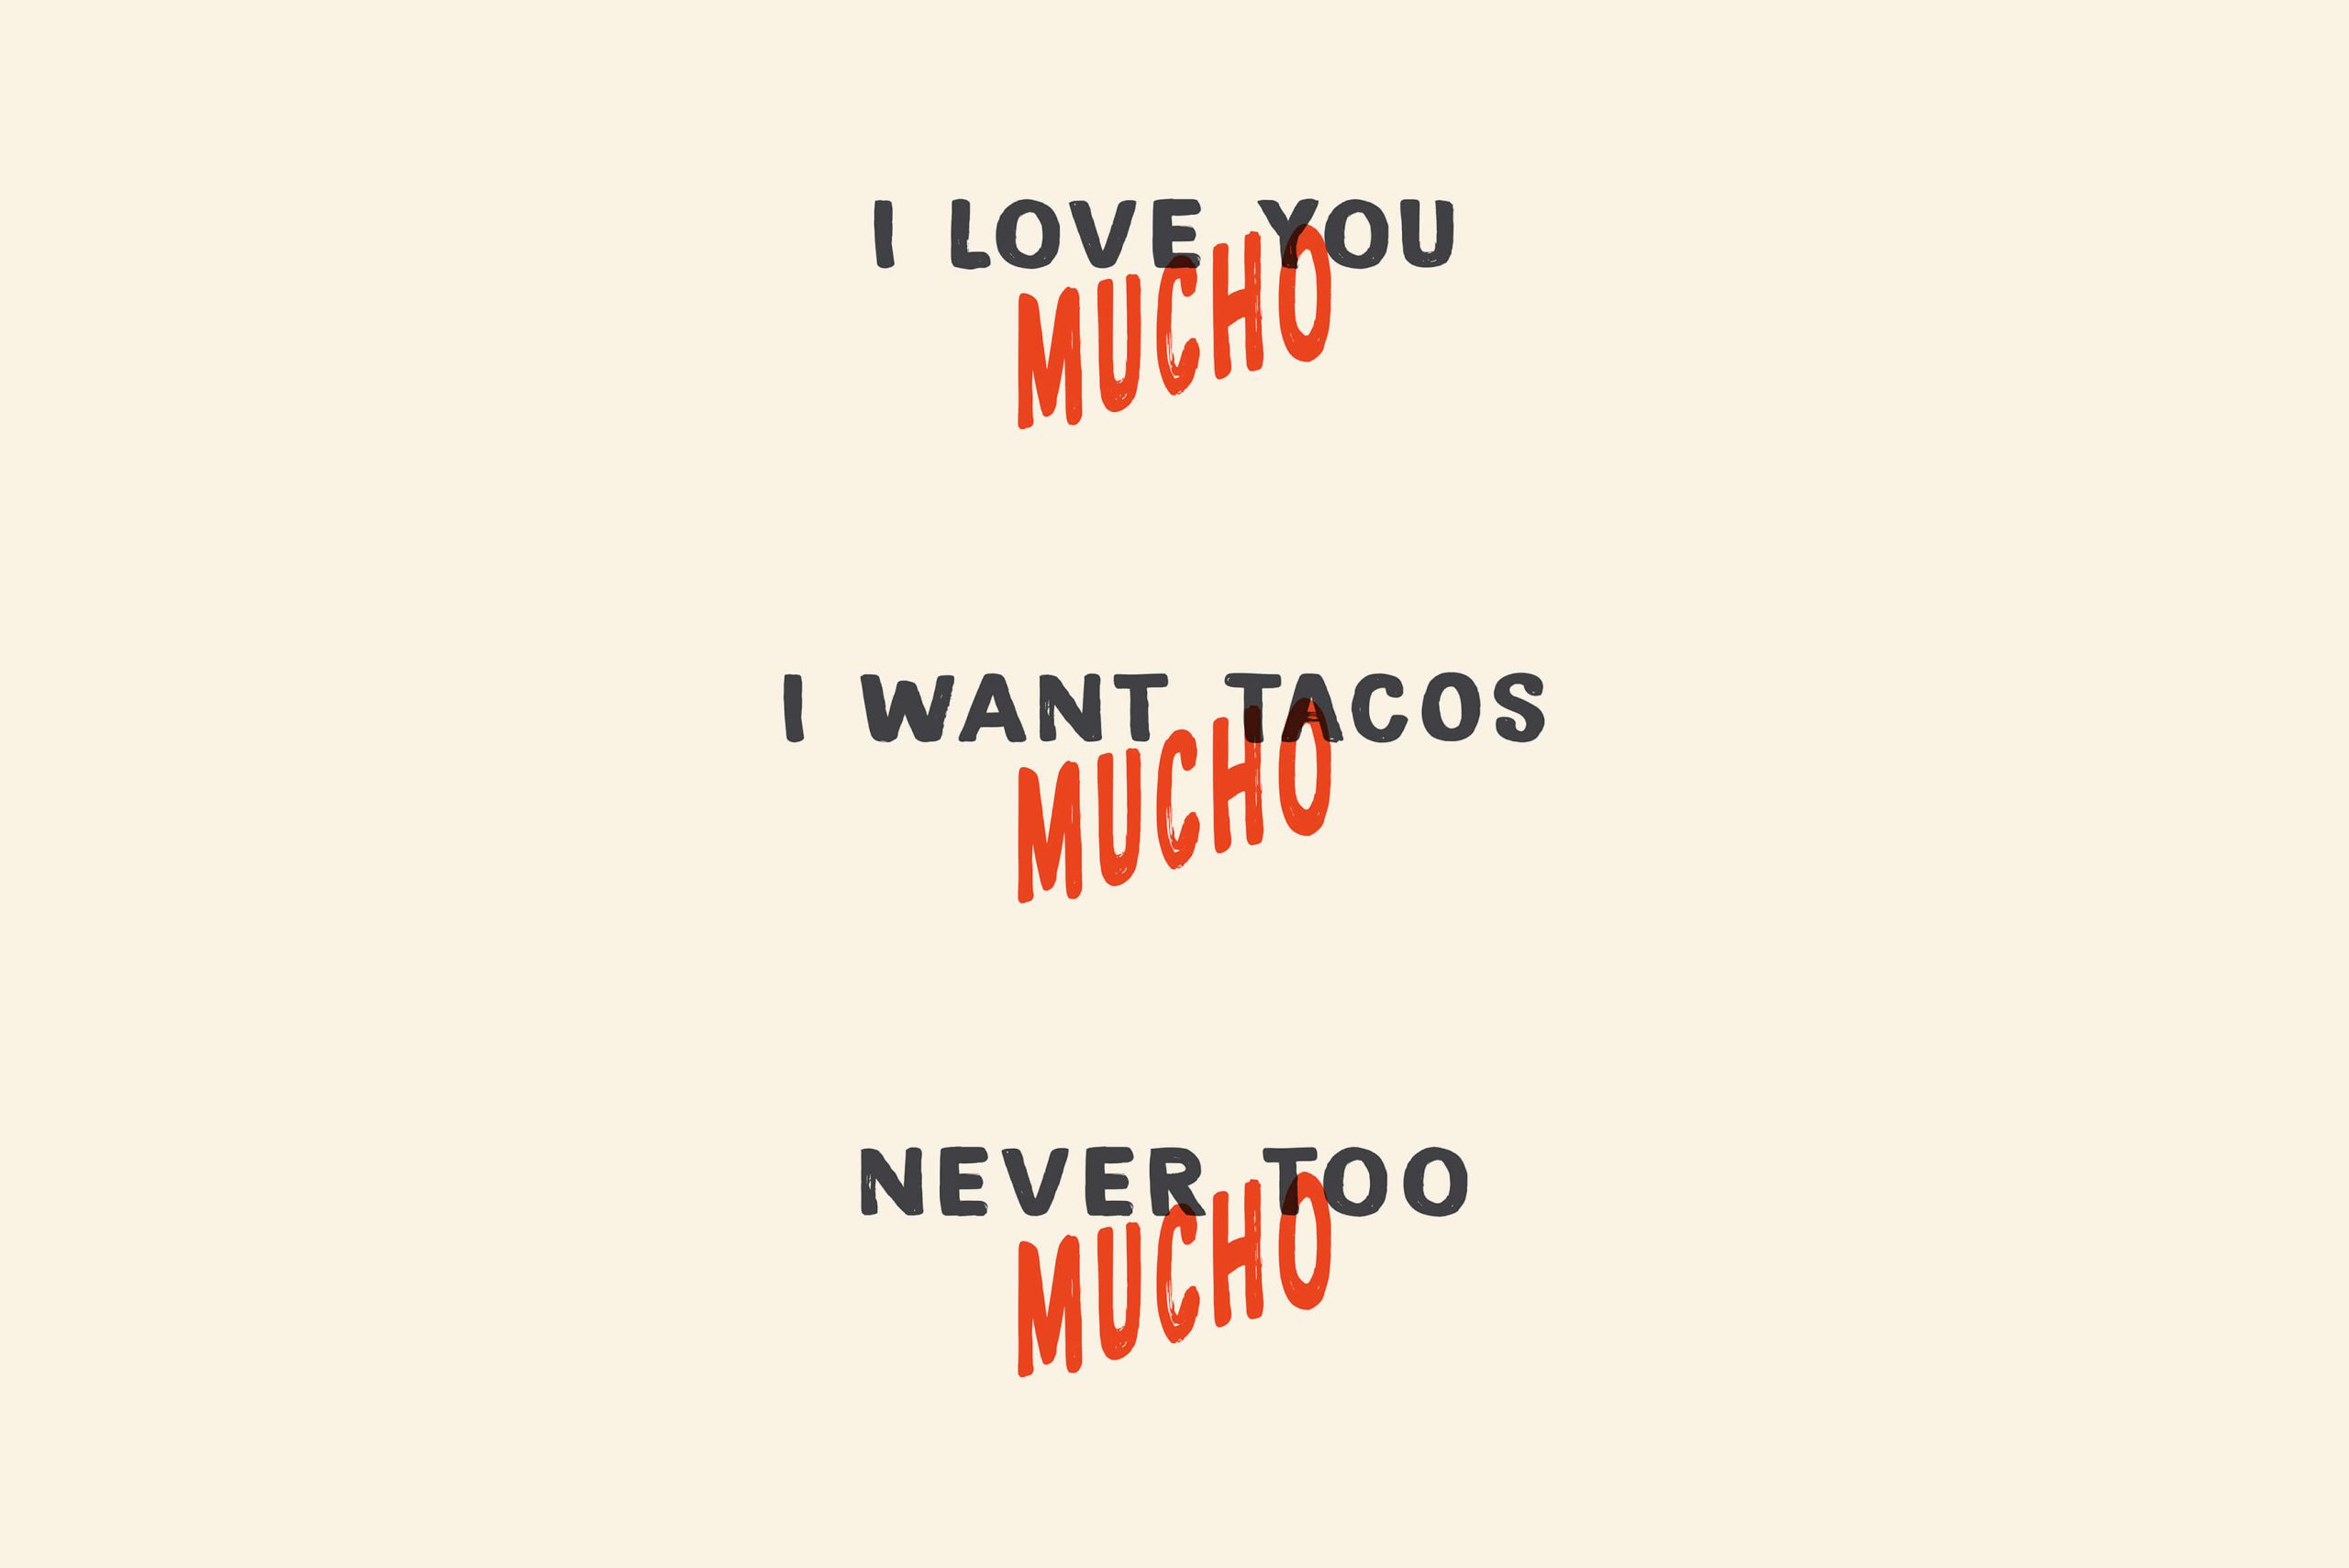 Ovolo Te Quiero Mucho Hospitality Identity - Tone of voice copy statements: I LOVE YOU MUCHO